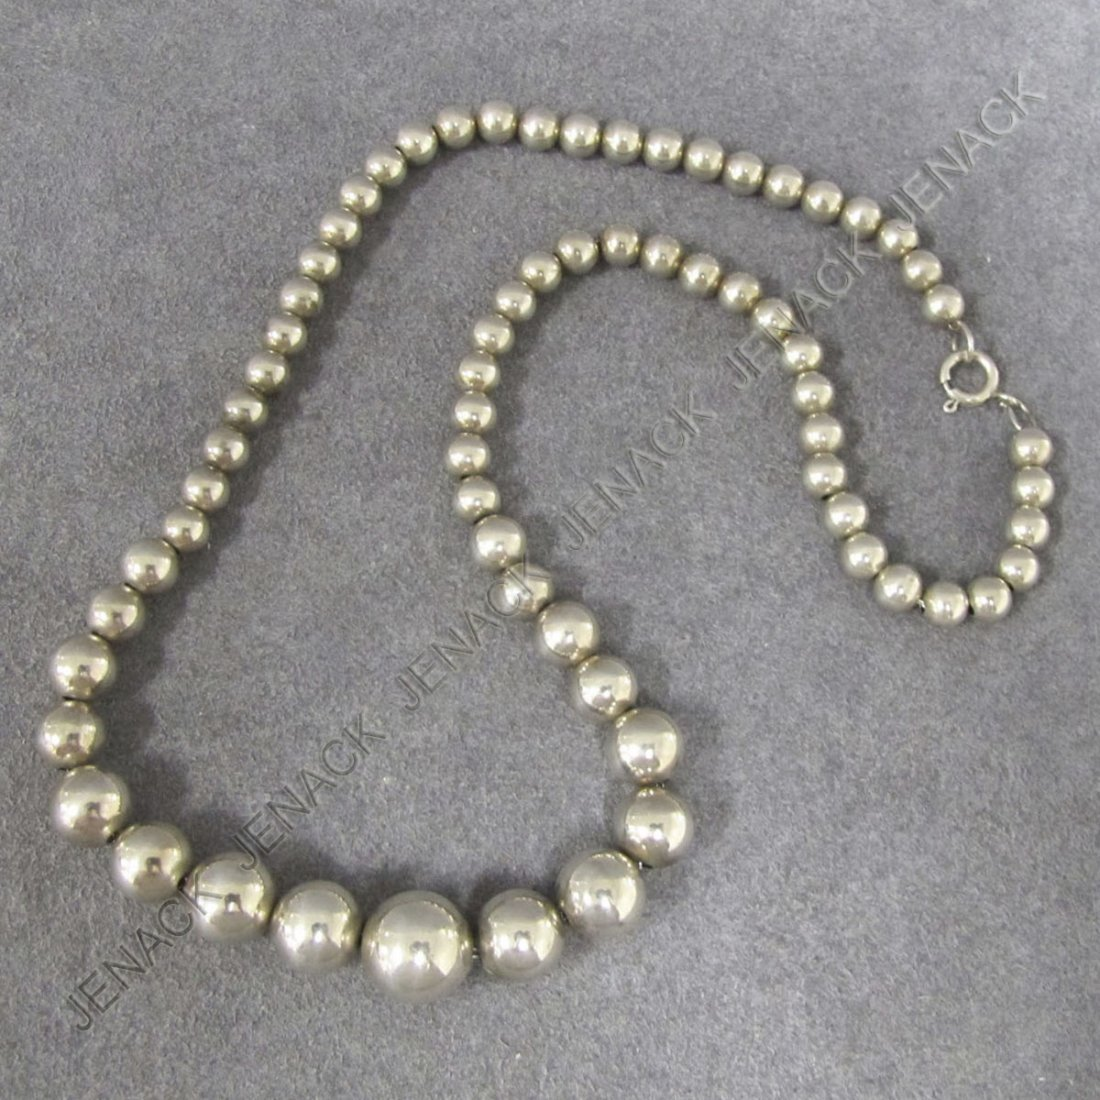 2: STERLING GRADUATED 5.9-11.9MM BEADED NECKLACE